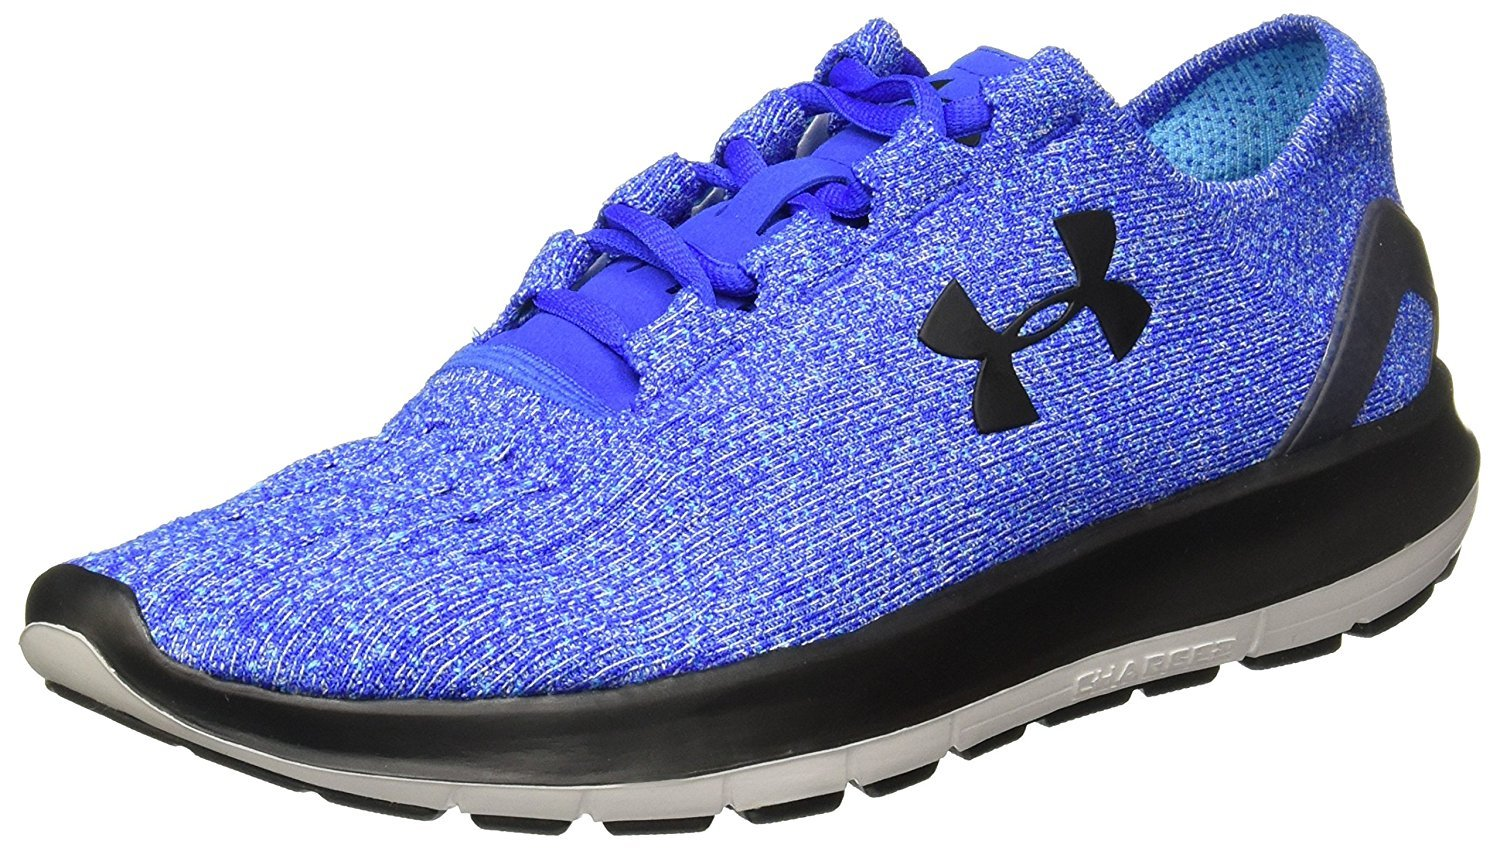 best website b188f c04ae ... Under Armour Armour Armour Men s Speedform Slingride 4abc8c ...